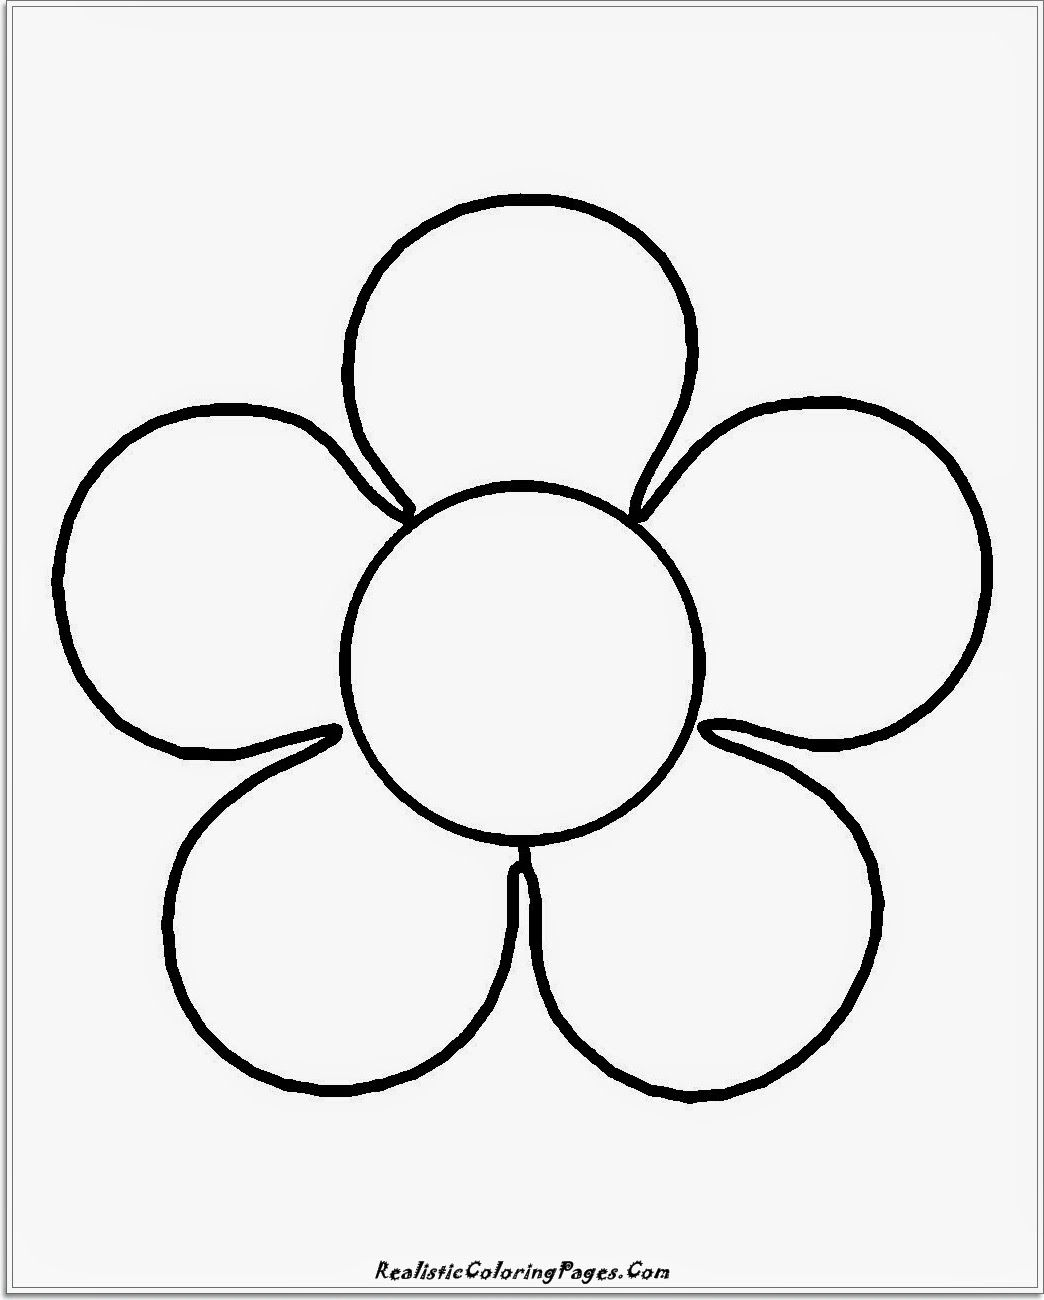 free printable easy flower coloring pages | Easy Flower Coloring Pages - Coloring Home